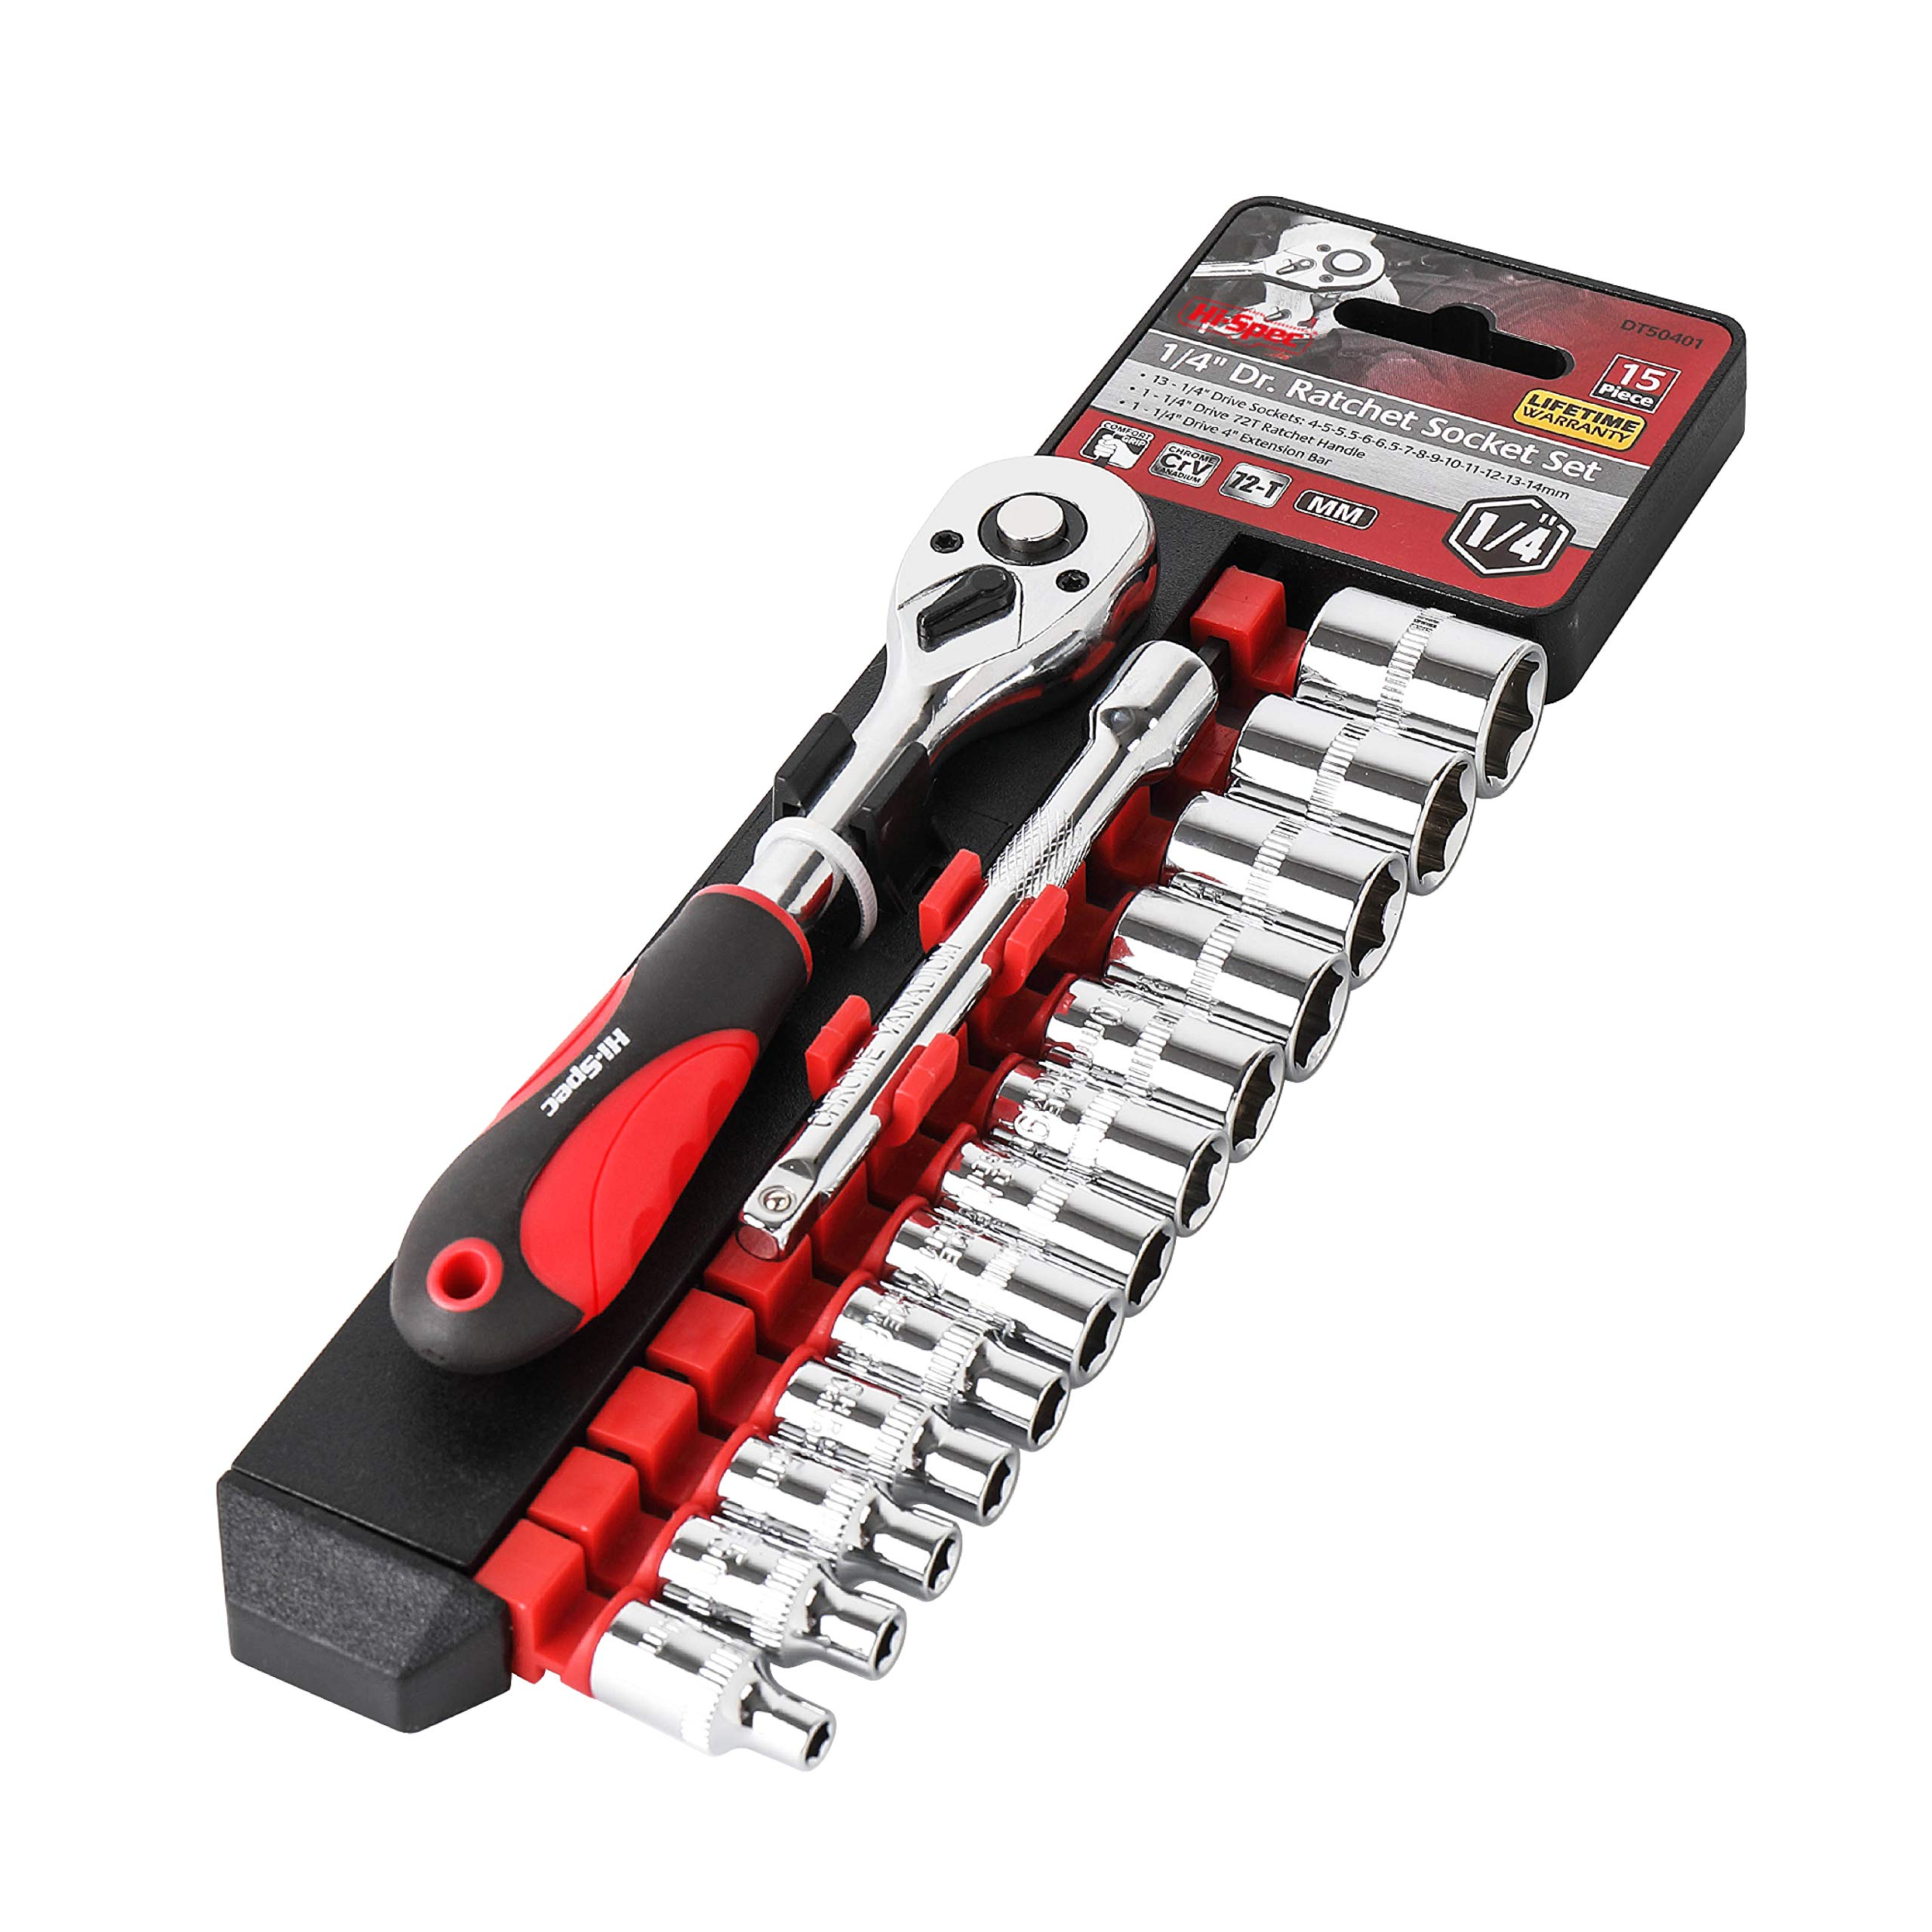 Hi-Spec 12pc 1/4'' Metric Socket Set with 72 Teeth Ratchet Drive Socket Handle with Quick Release Function, 5-14mm Socket Sizes & 100mm Extension Bar with Convenient Storage Rack Multi-Socke